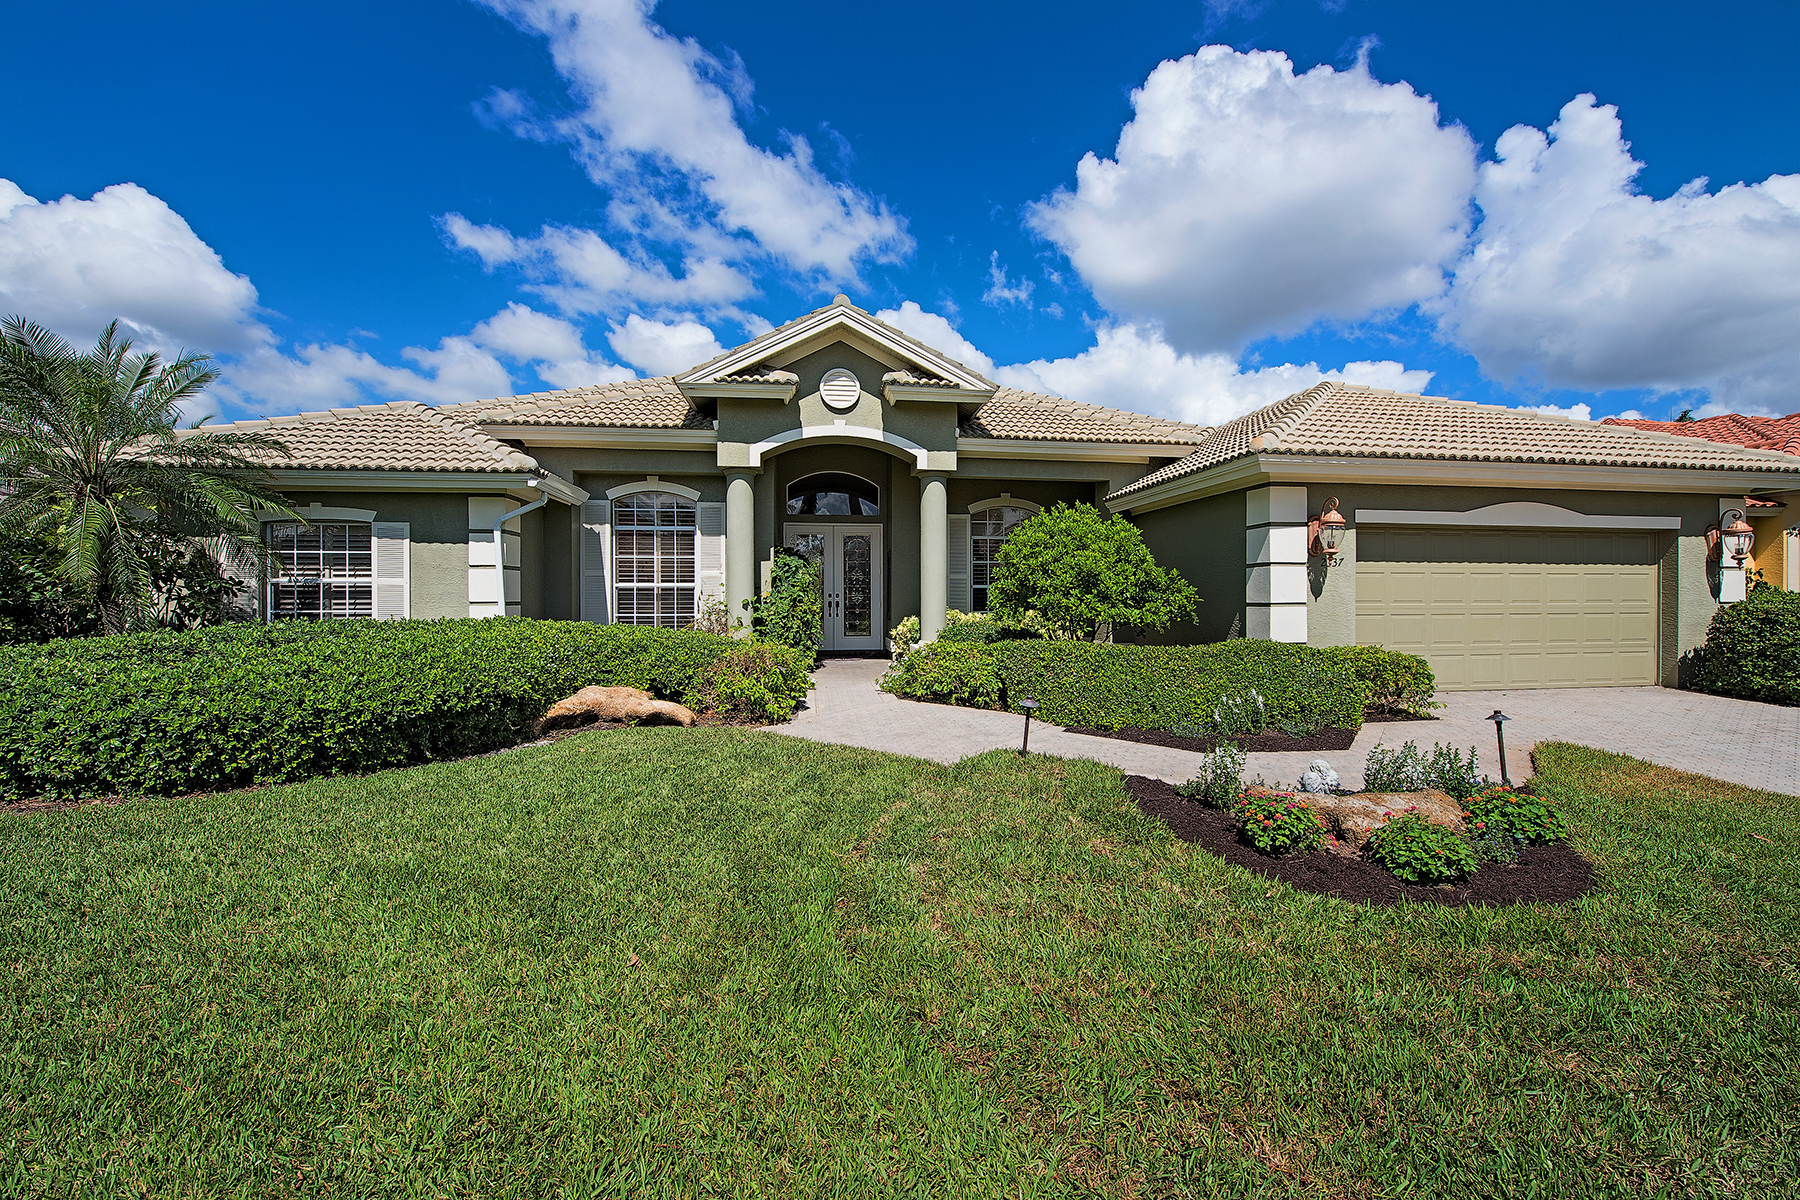 Single Family Home for Sale at 2337 Cheshire Ln , Naples, FL 34109 2337 Cheshire Ln, Naples, Florida 34109 United States